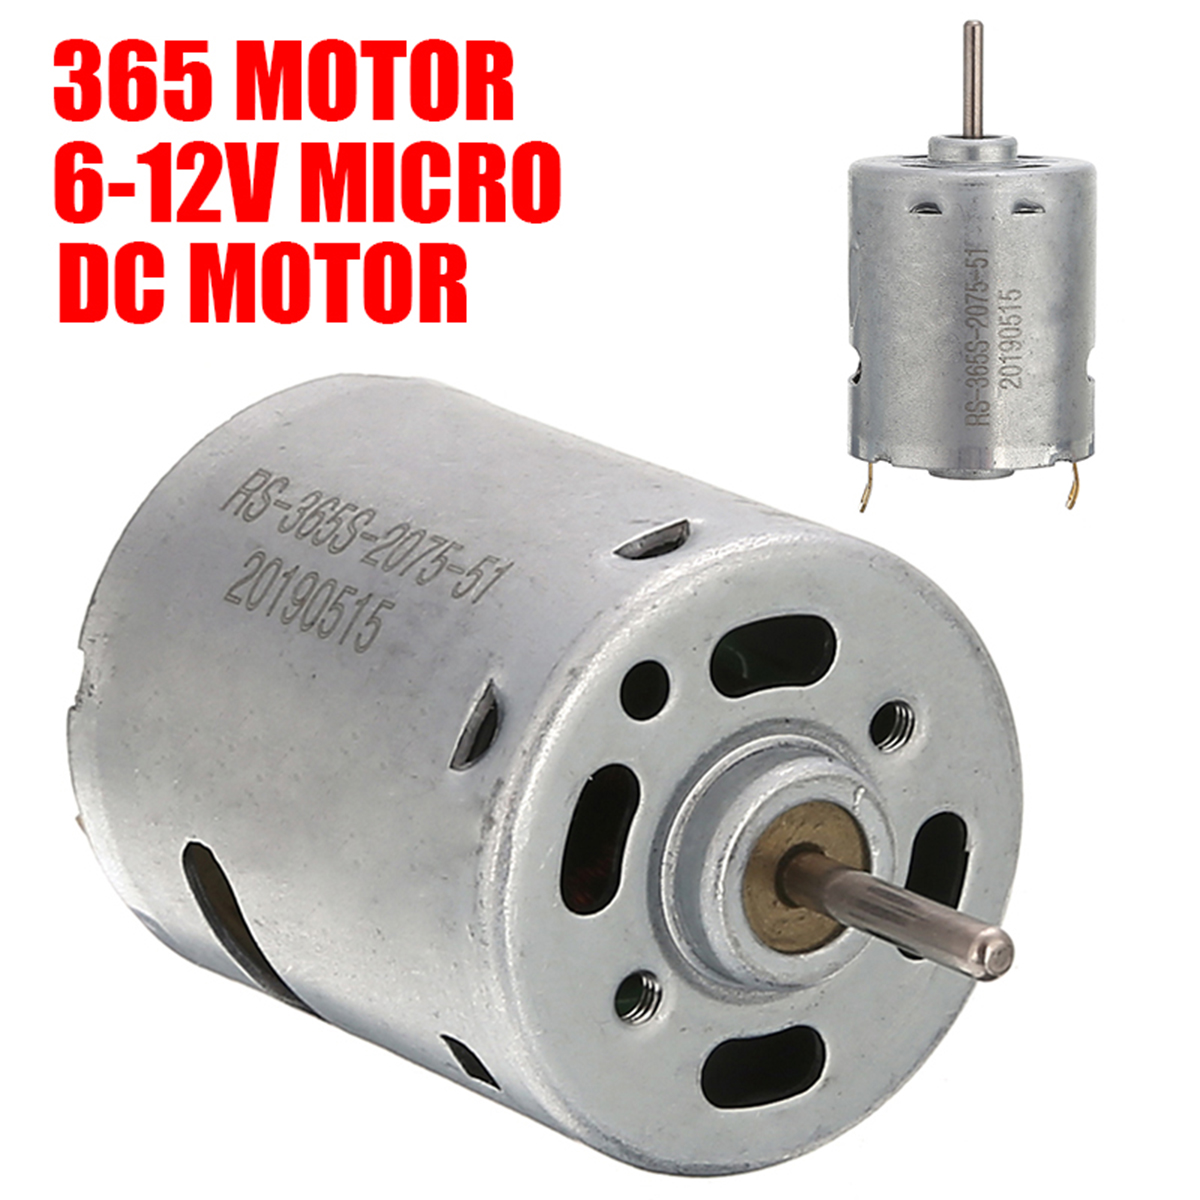 6-12V 5000RPM Mini DC Motor 365 Micro DC Motor For DIY Small Electric Drill Motor High Quality